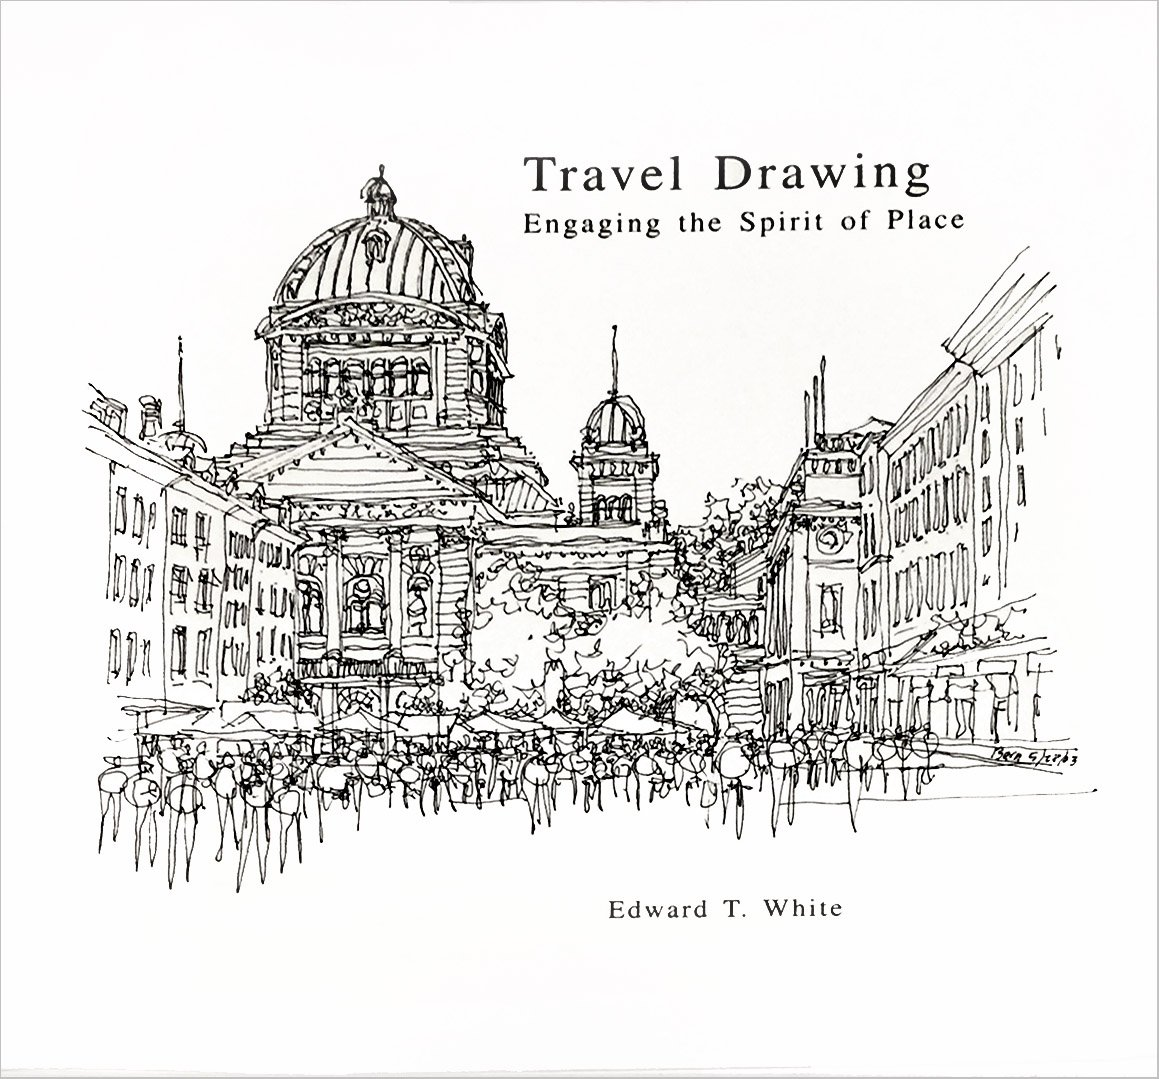 travel drawing engaging the spirit of place 9781928643210 amazon